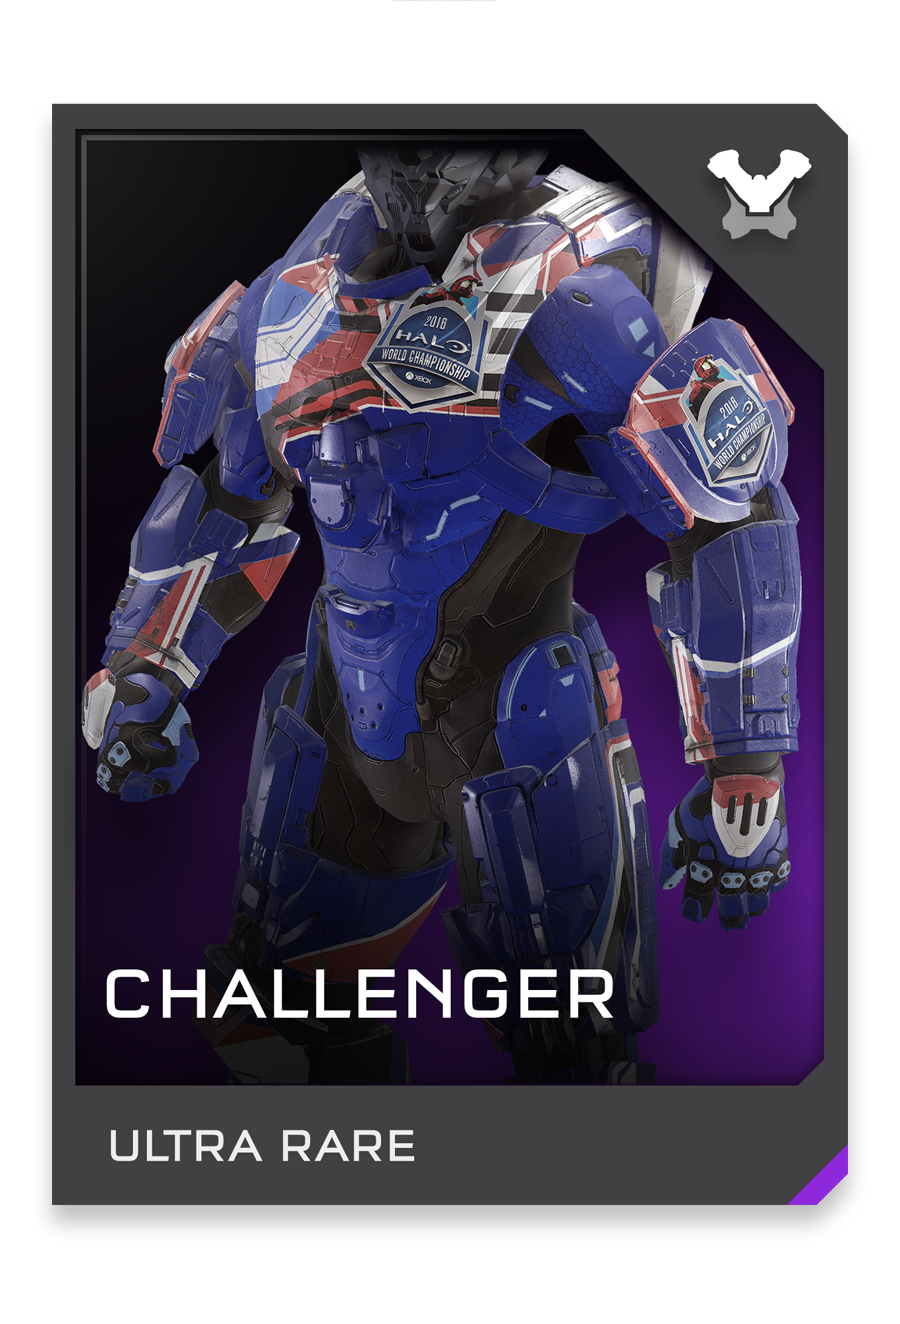 Halo-5-Guardians-Challenger-REQ-Card-Armor